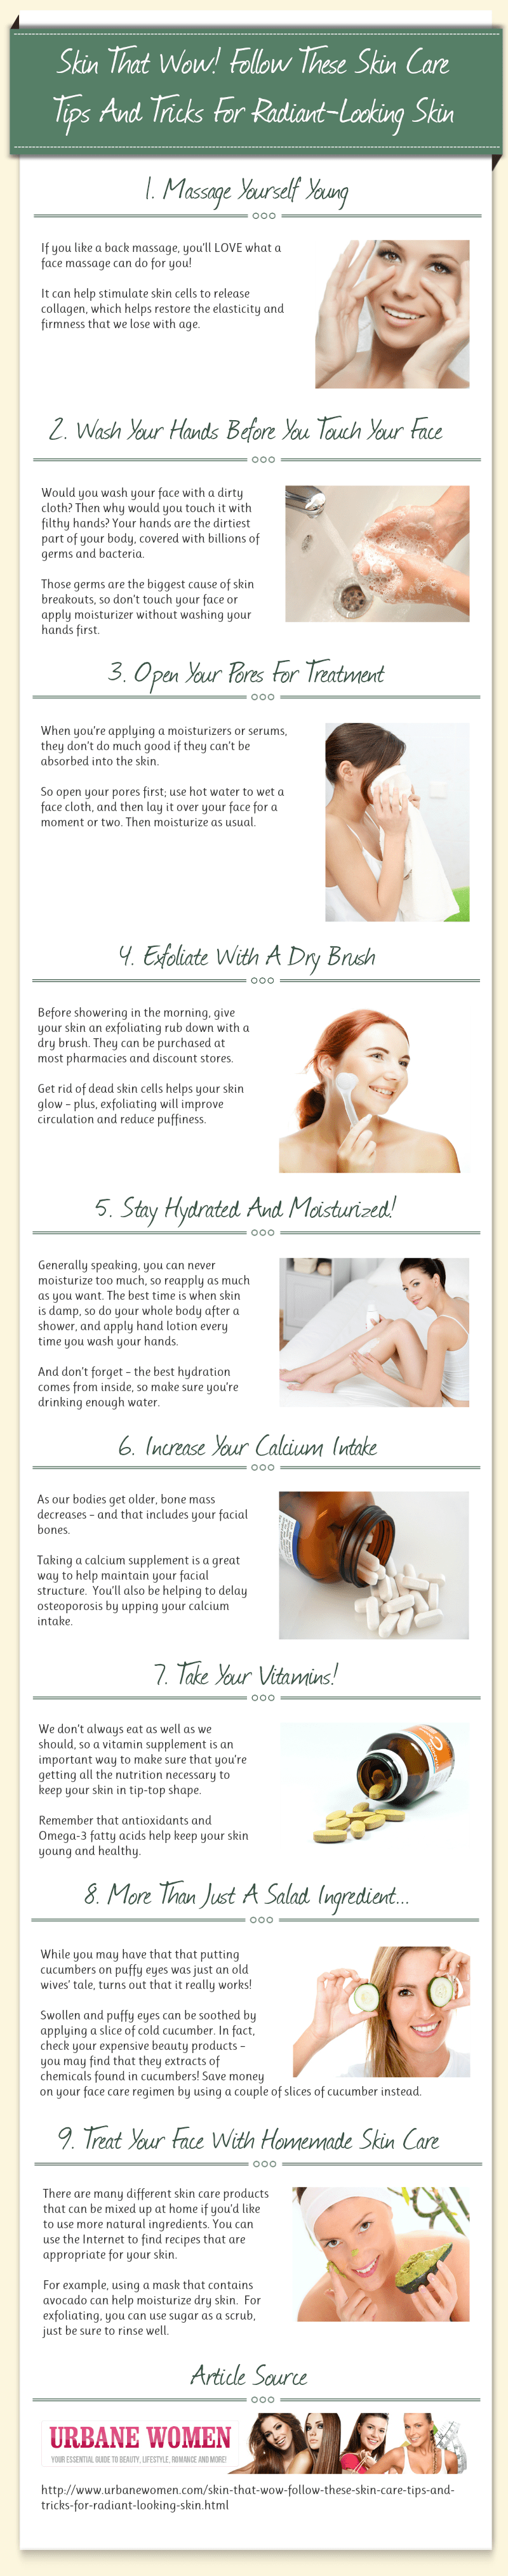 Tips And Tricks For Radiant-Looking Skin